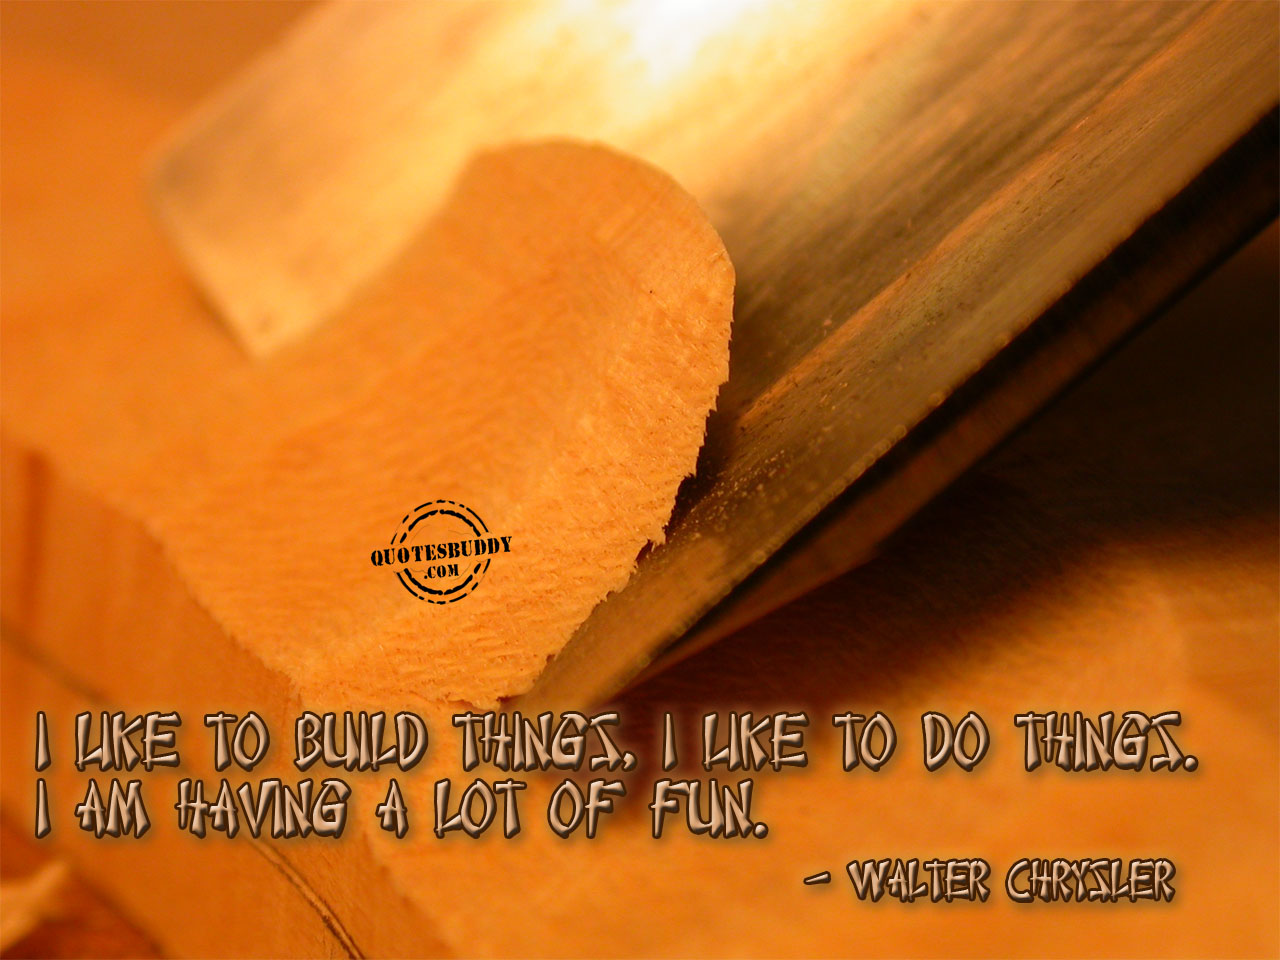 Fun Things quote #2